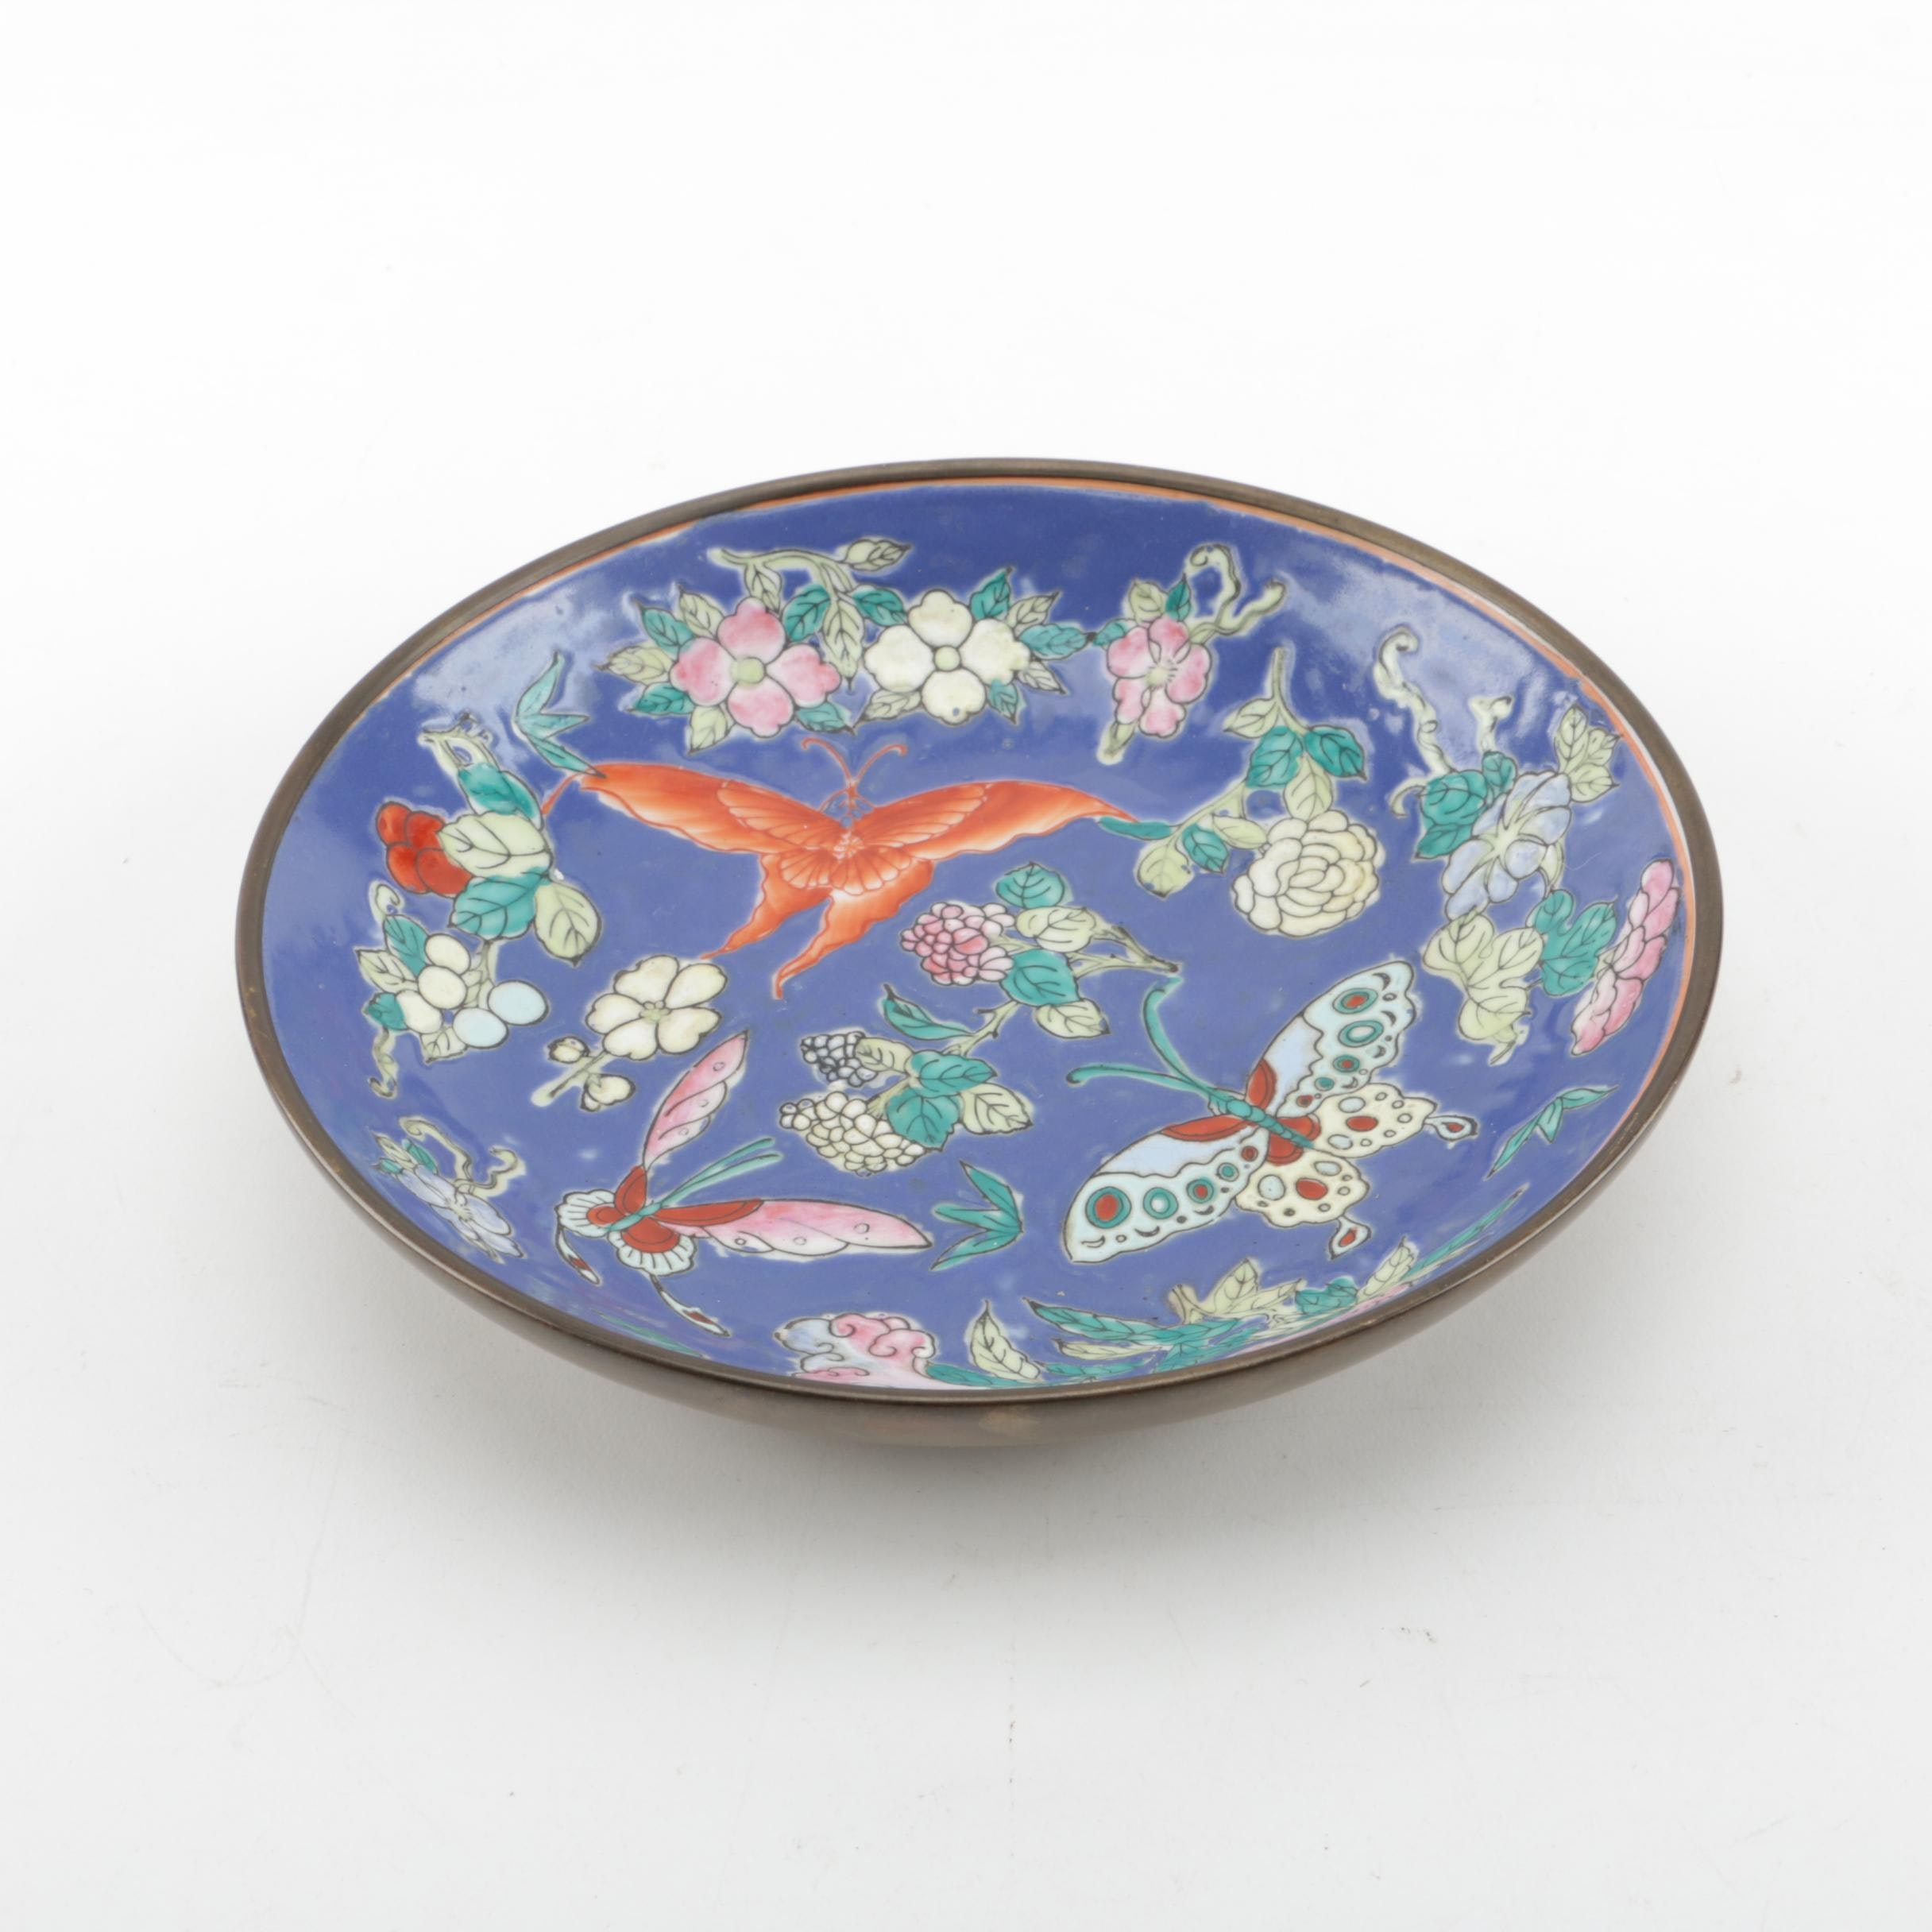 Chinese Porcelain and Brass Decorative Plate